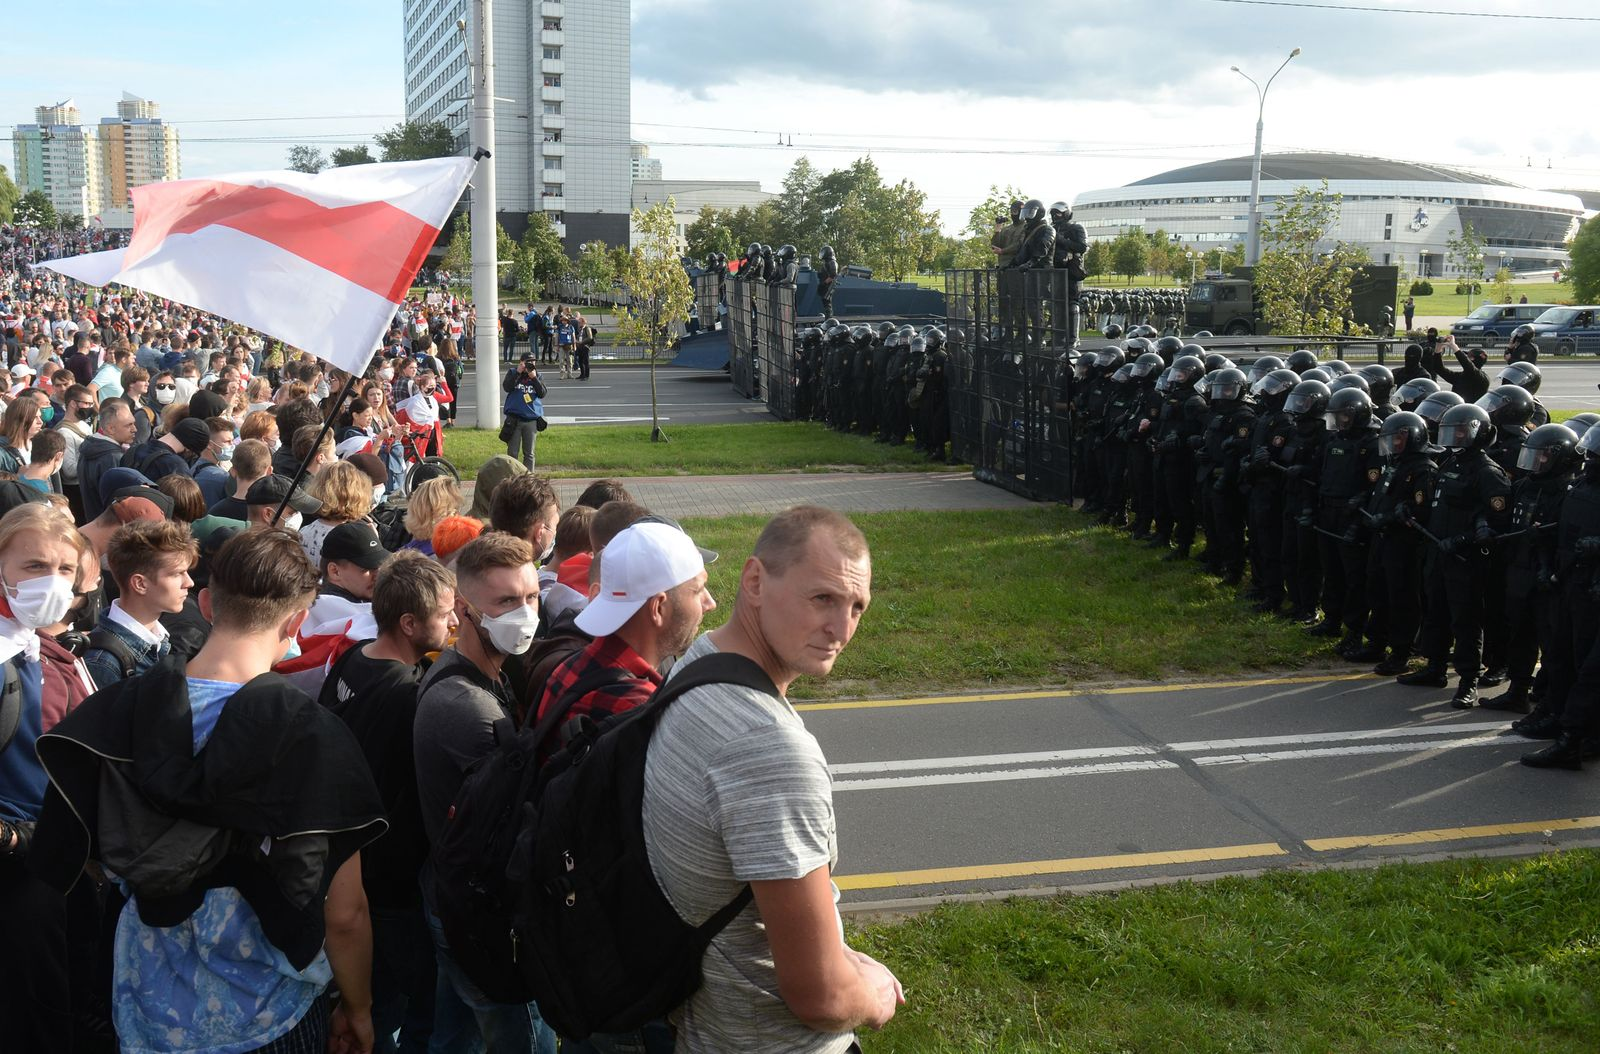 Opposition protests continue in Minsk, Balarus - 13 Sep 2020